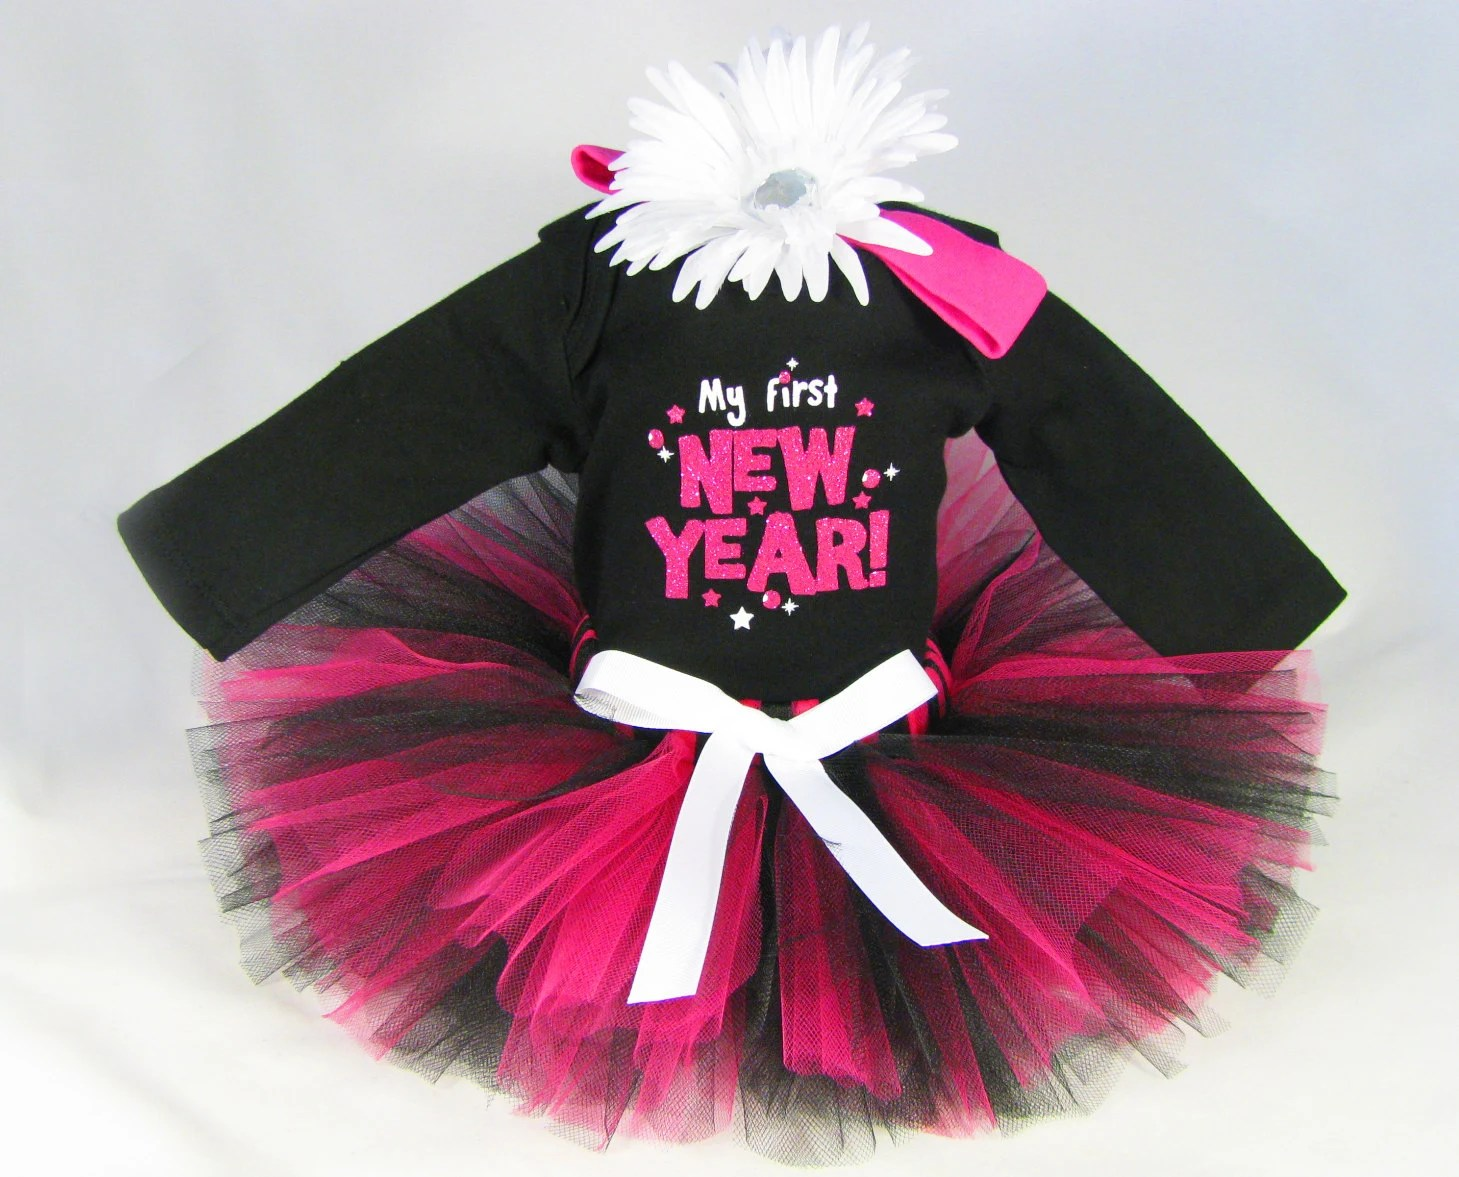 Baby Girl New Year Outfit - Babys New Year Tutu Set - Girls Tutu Bodysuit and Headband Set - My First New Year - Size 12 Months